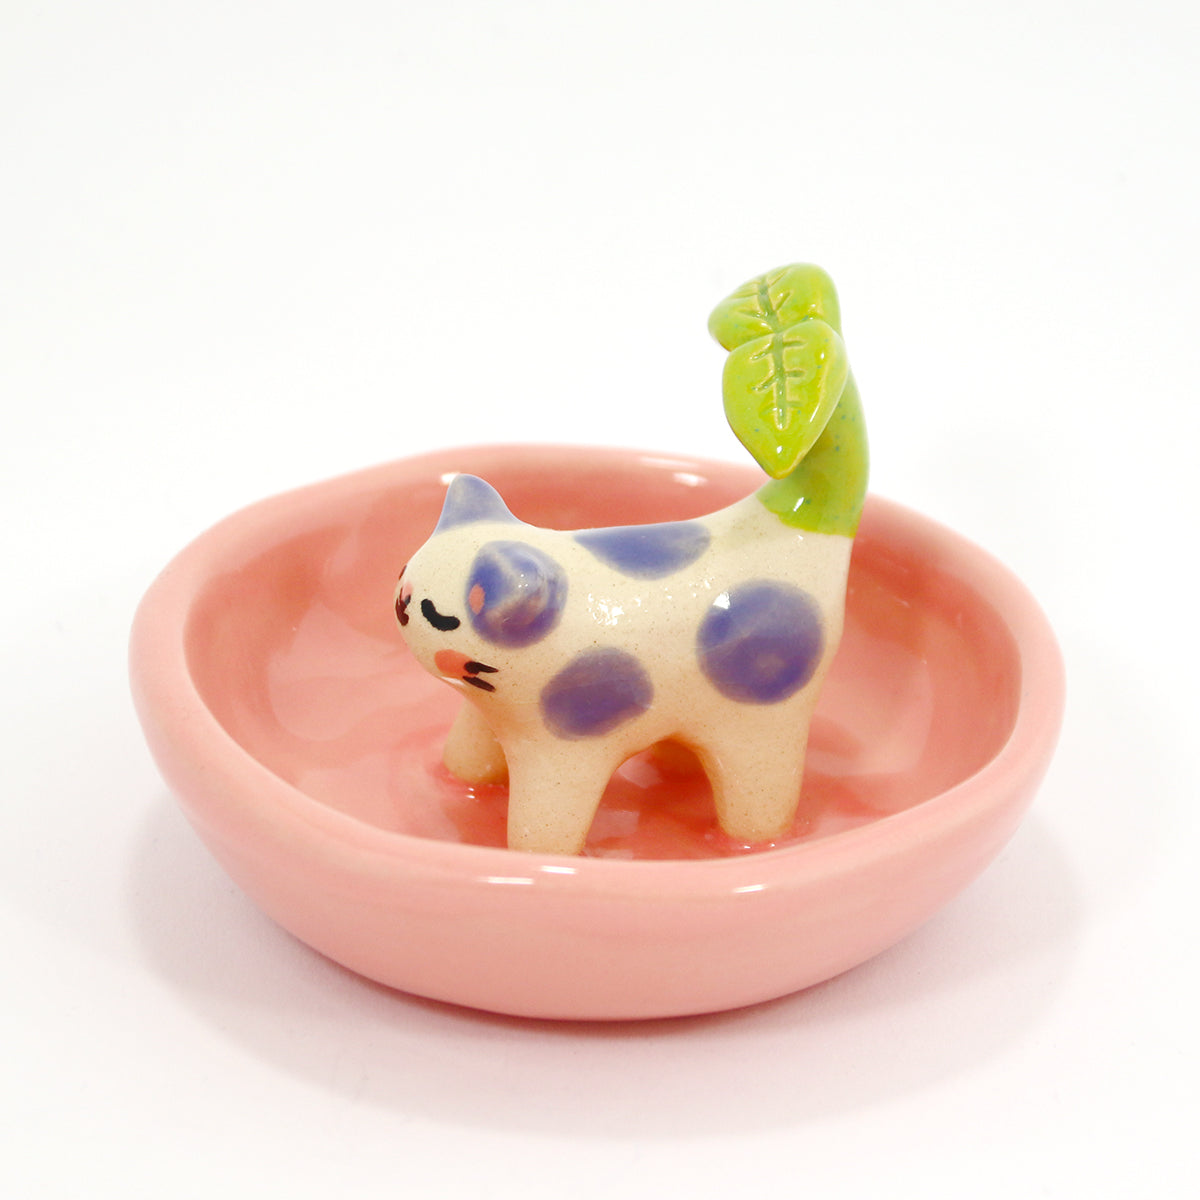 Ceramic Plant Kitty Trinket Dish #1423